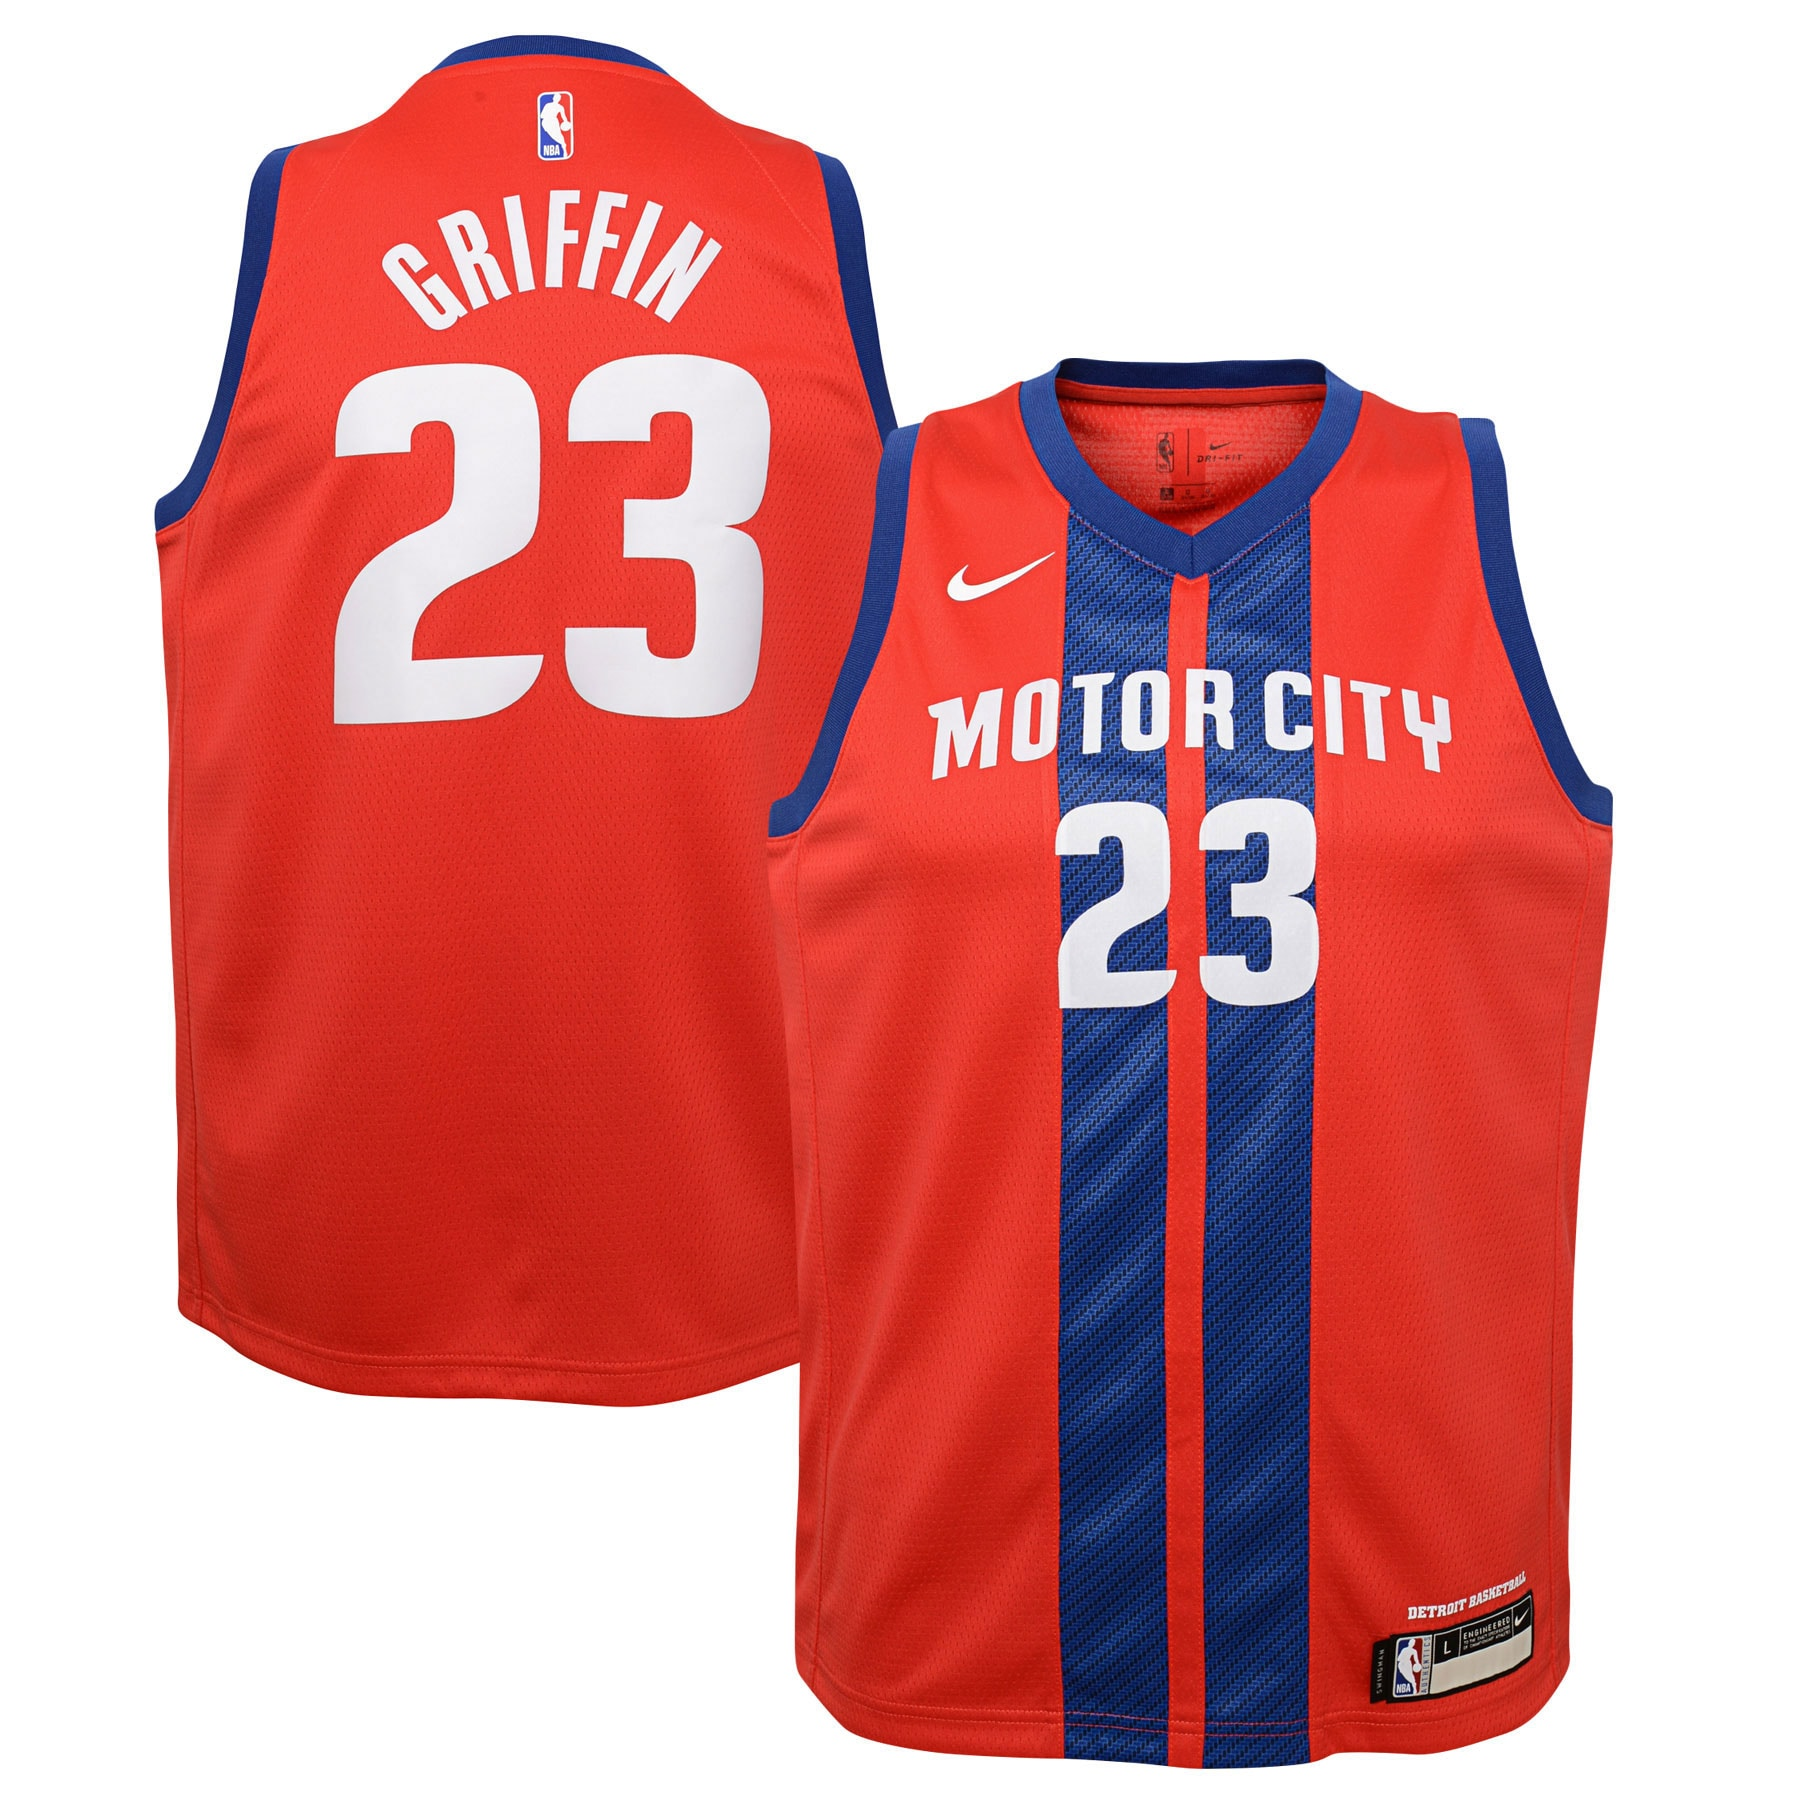 Blake Griffin Detroit Pistons Nike Youth Swingman Jersey Red - City Edition